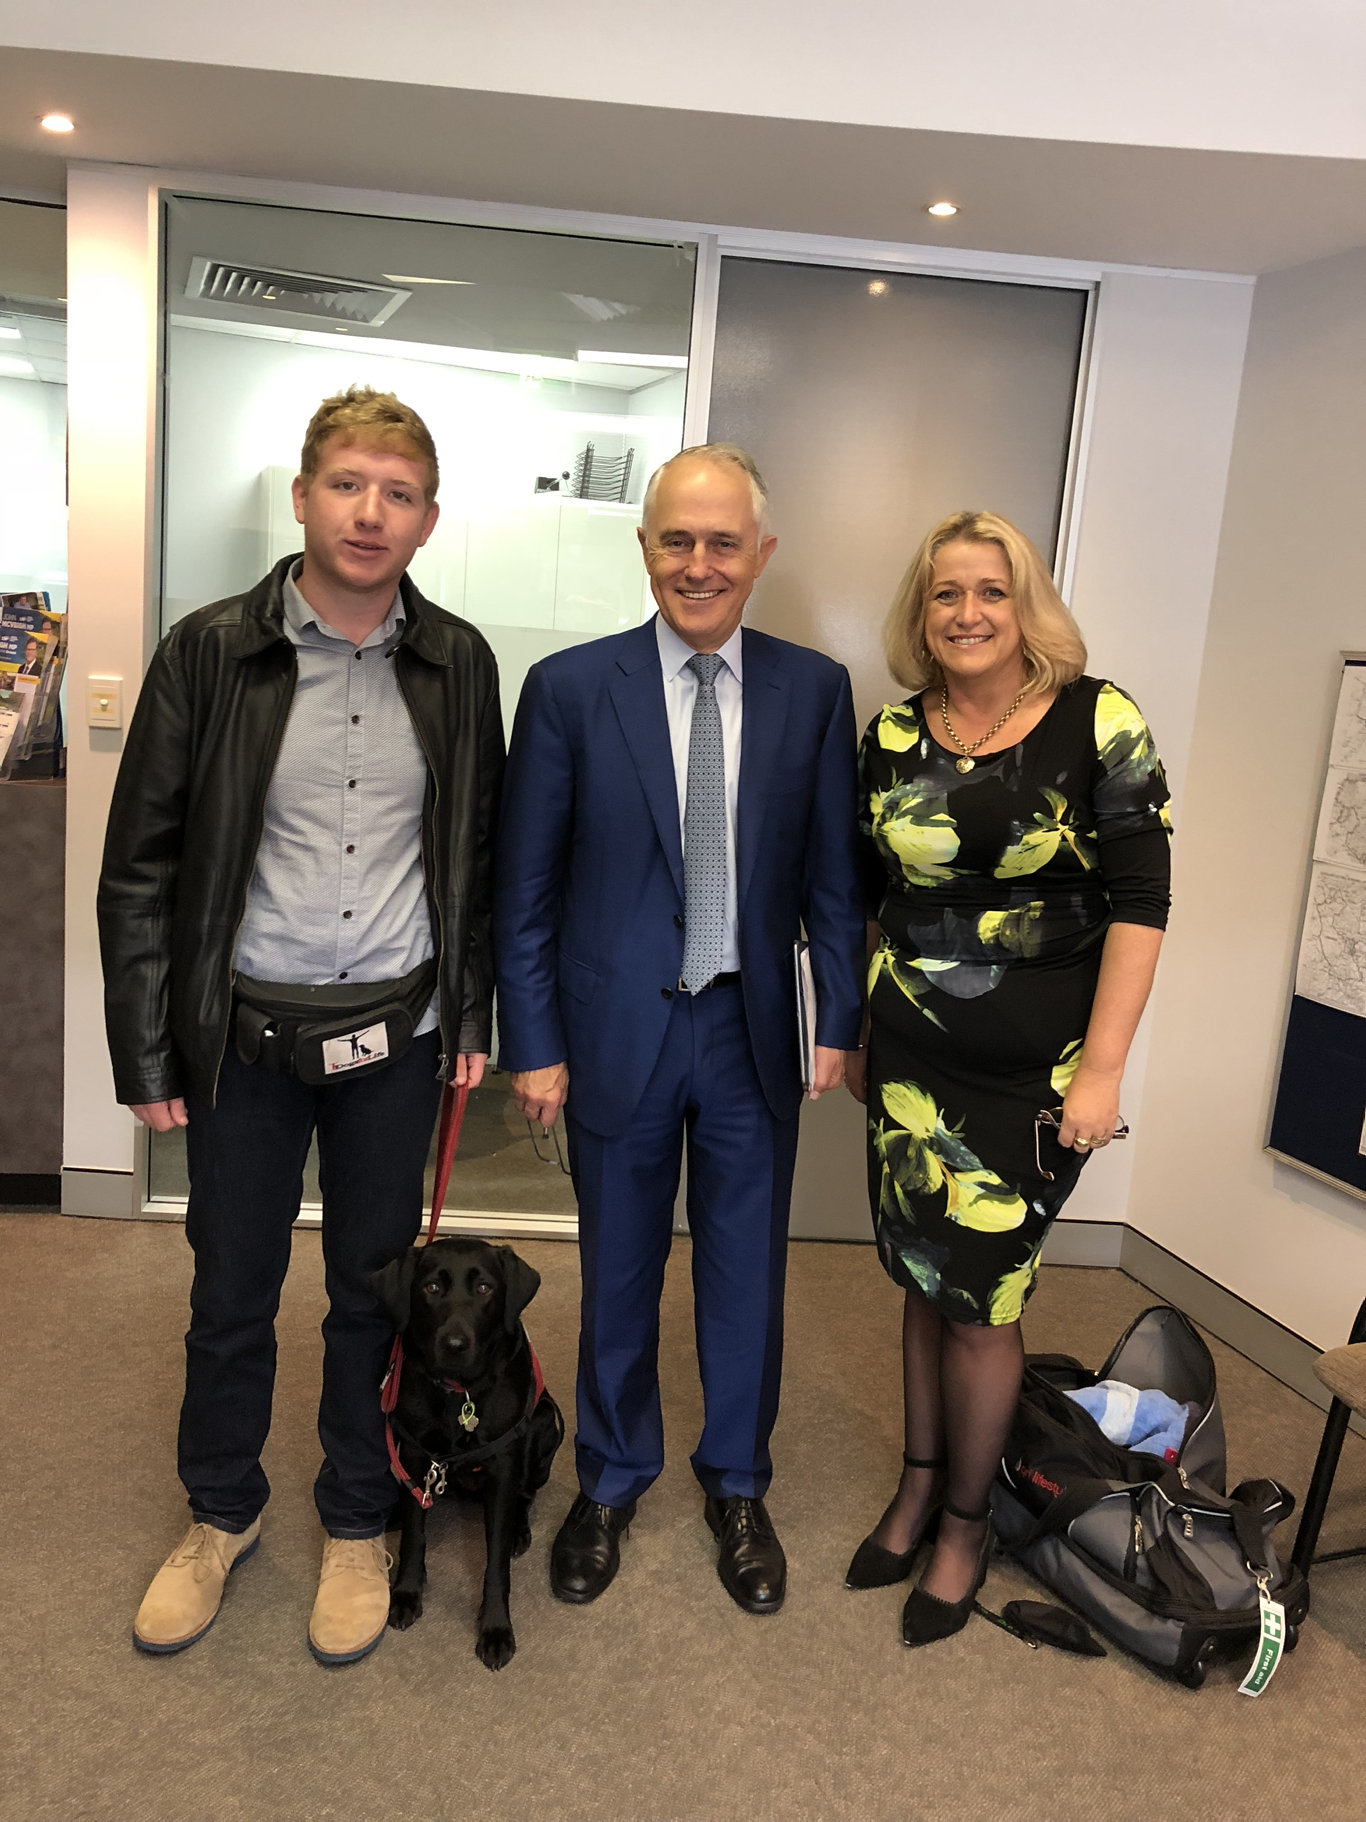 Toowoomba's Lachlan Miles and his mother Rhonda met with then-Prime Minister Malcolm Turnbull to try to resolve the family's issues with the NDIS.